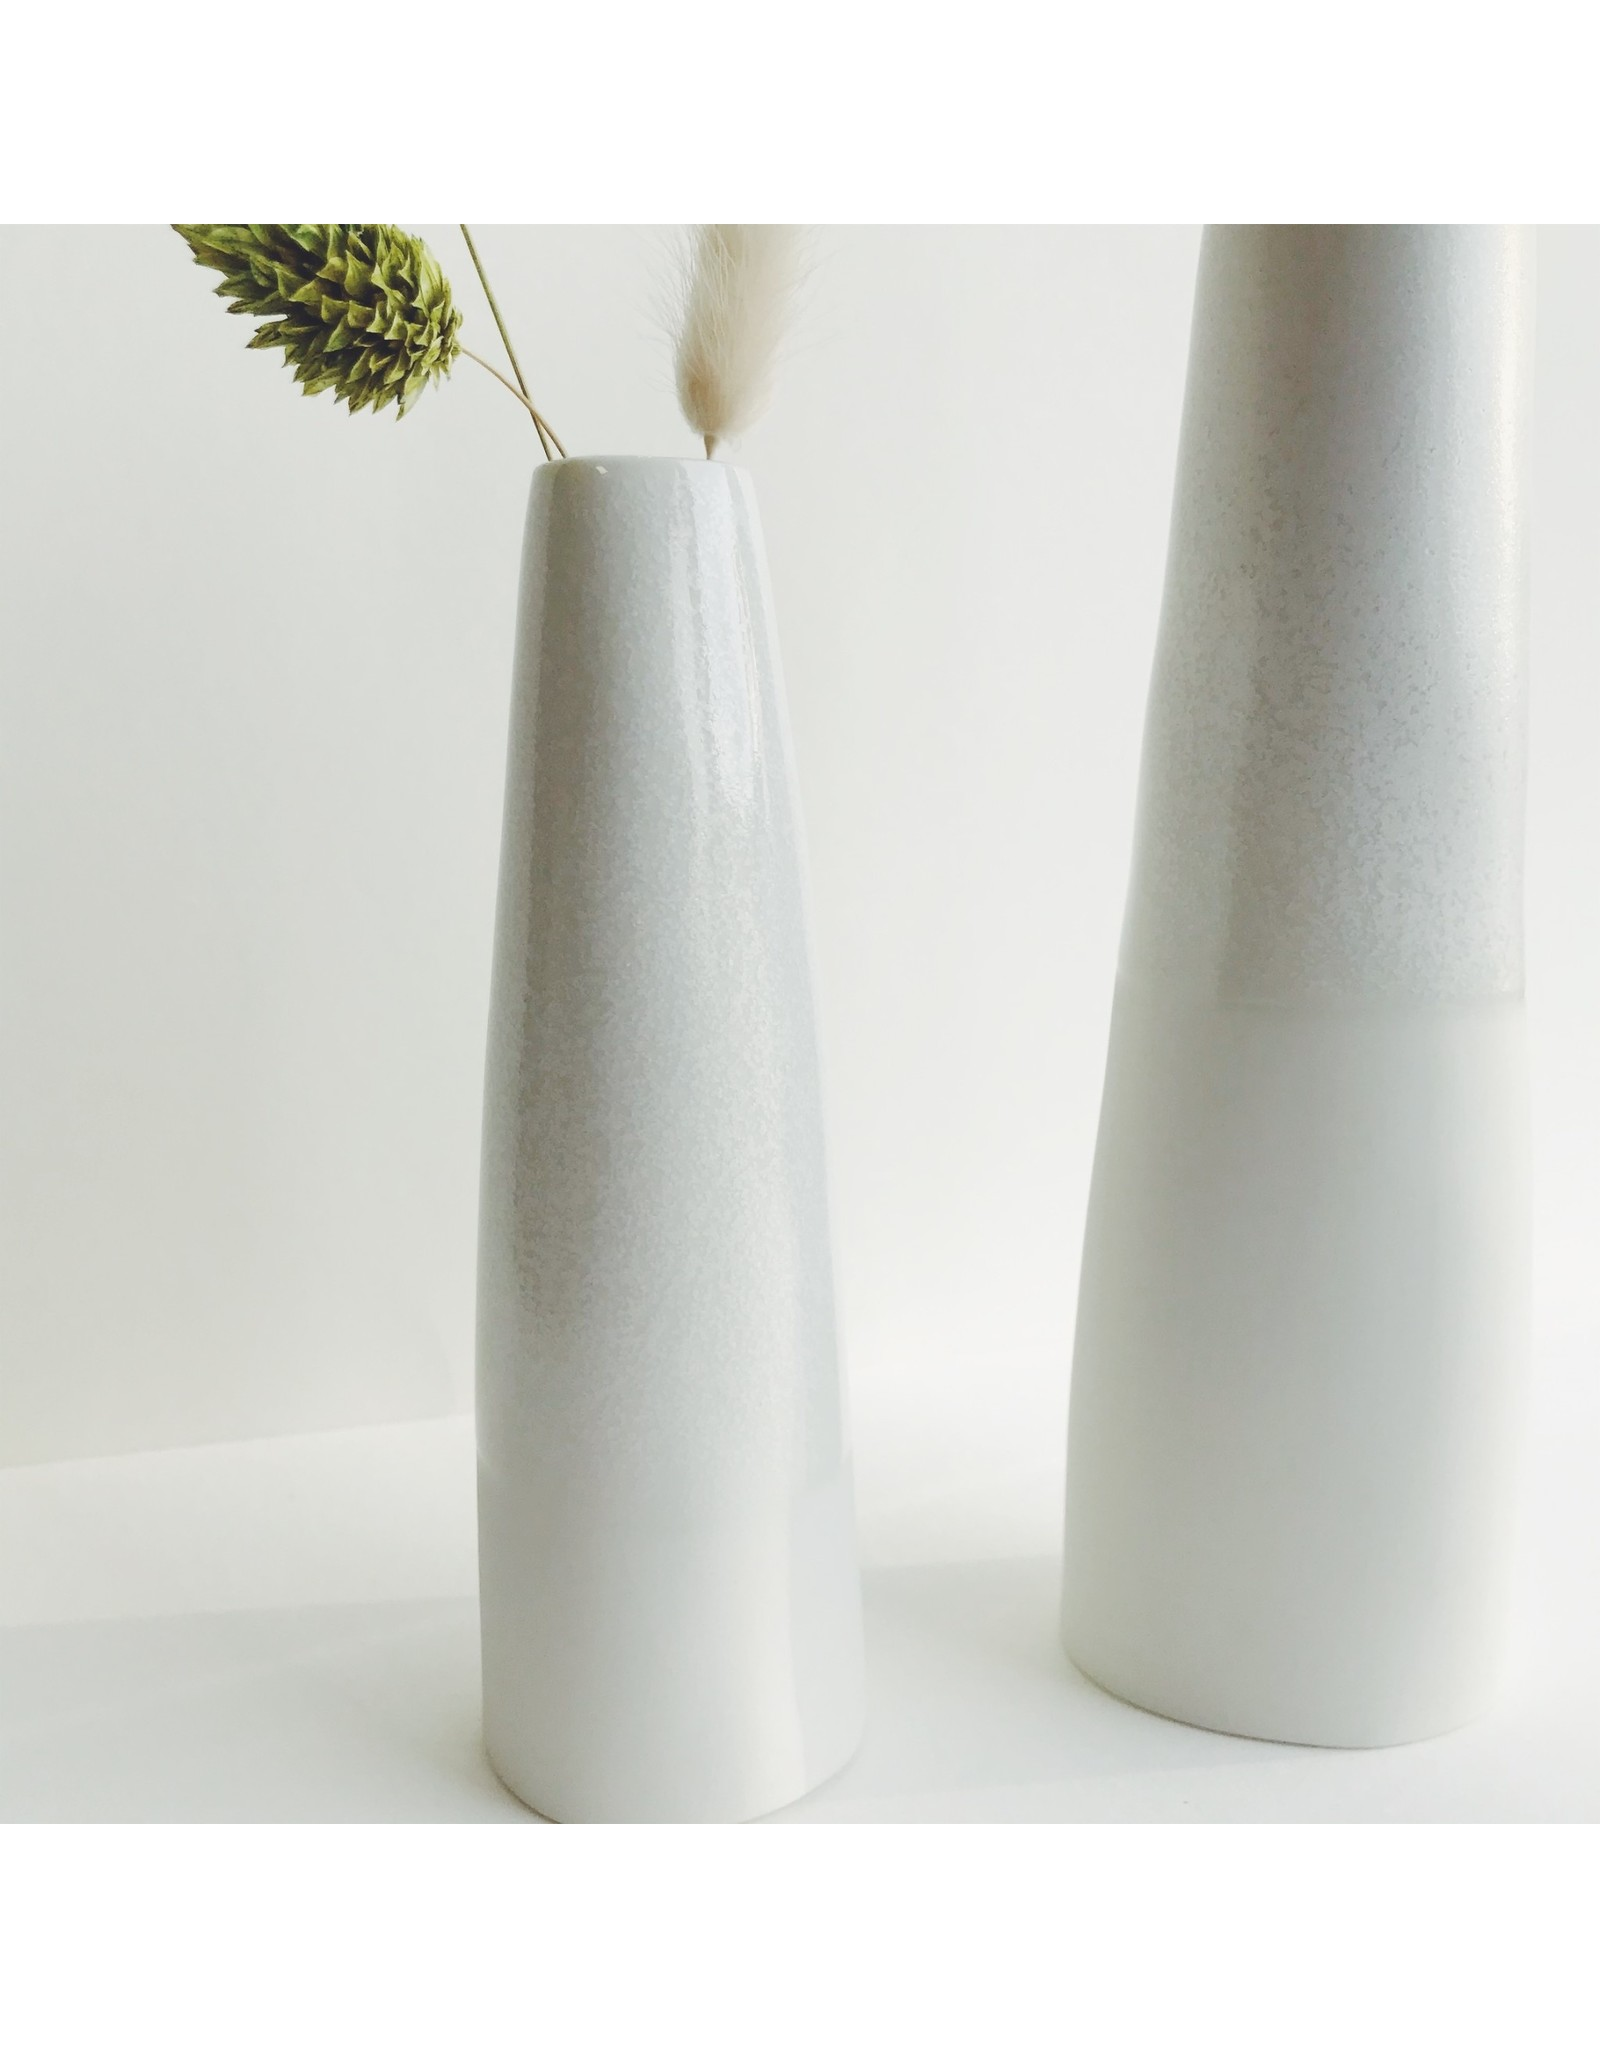 Porcelain Table Vase